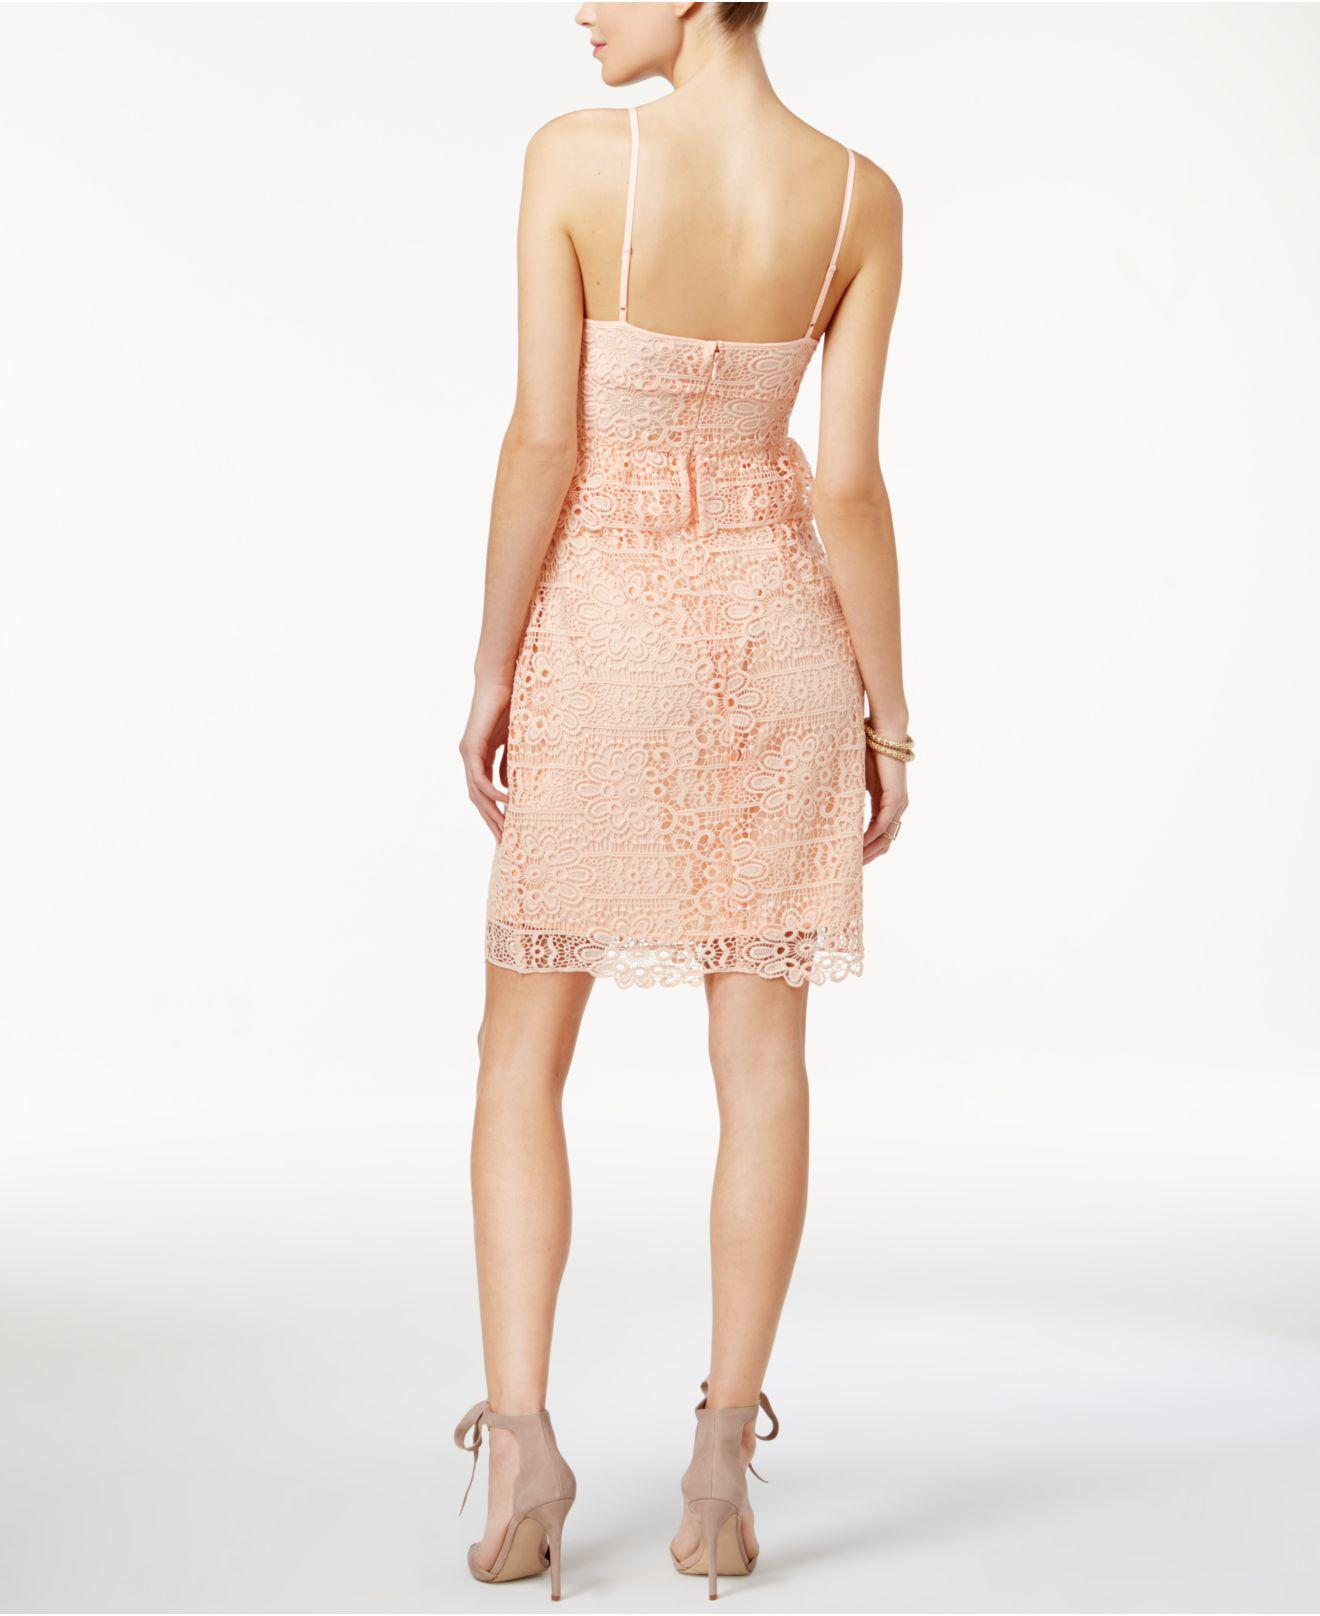 647bef6da22 Lyst - Guess Solstice Lace Bodycon Dress in Pink